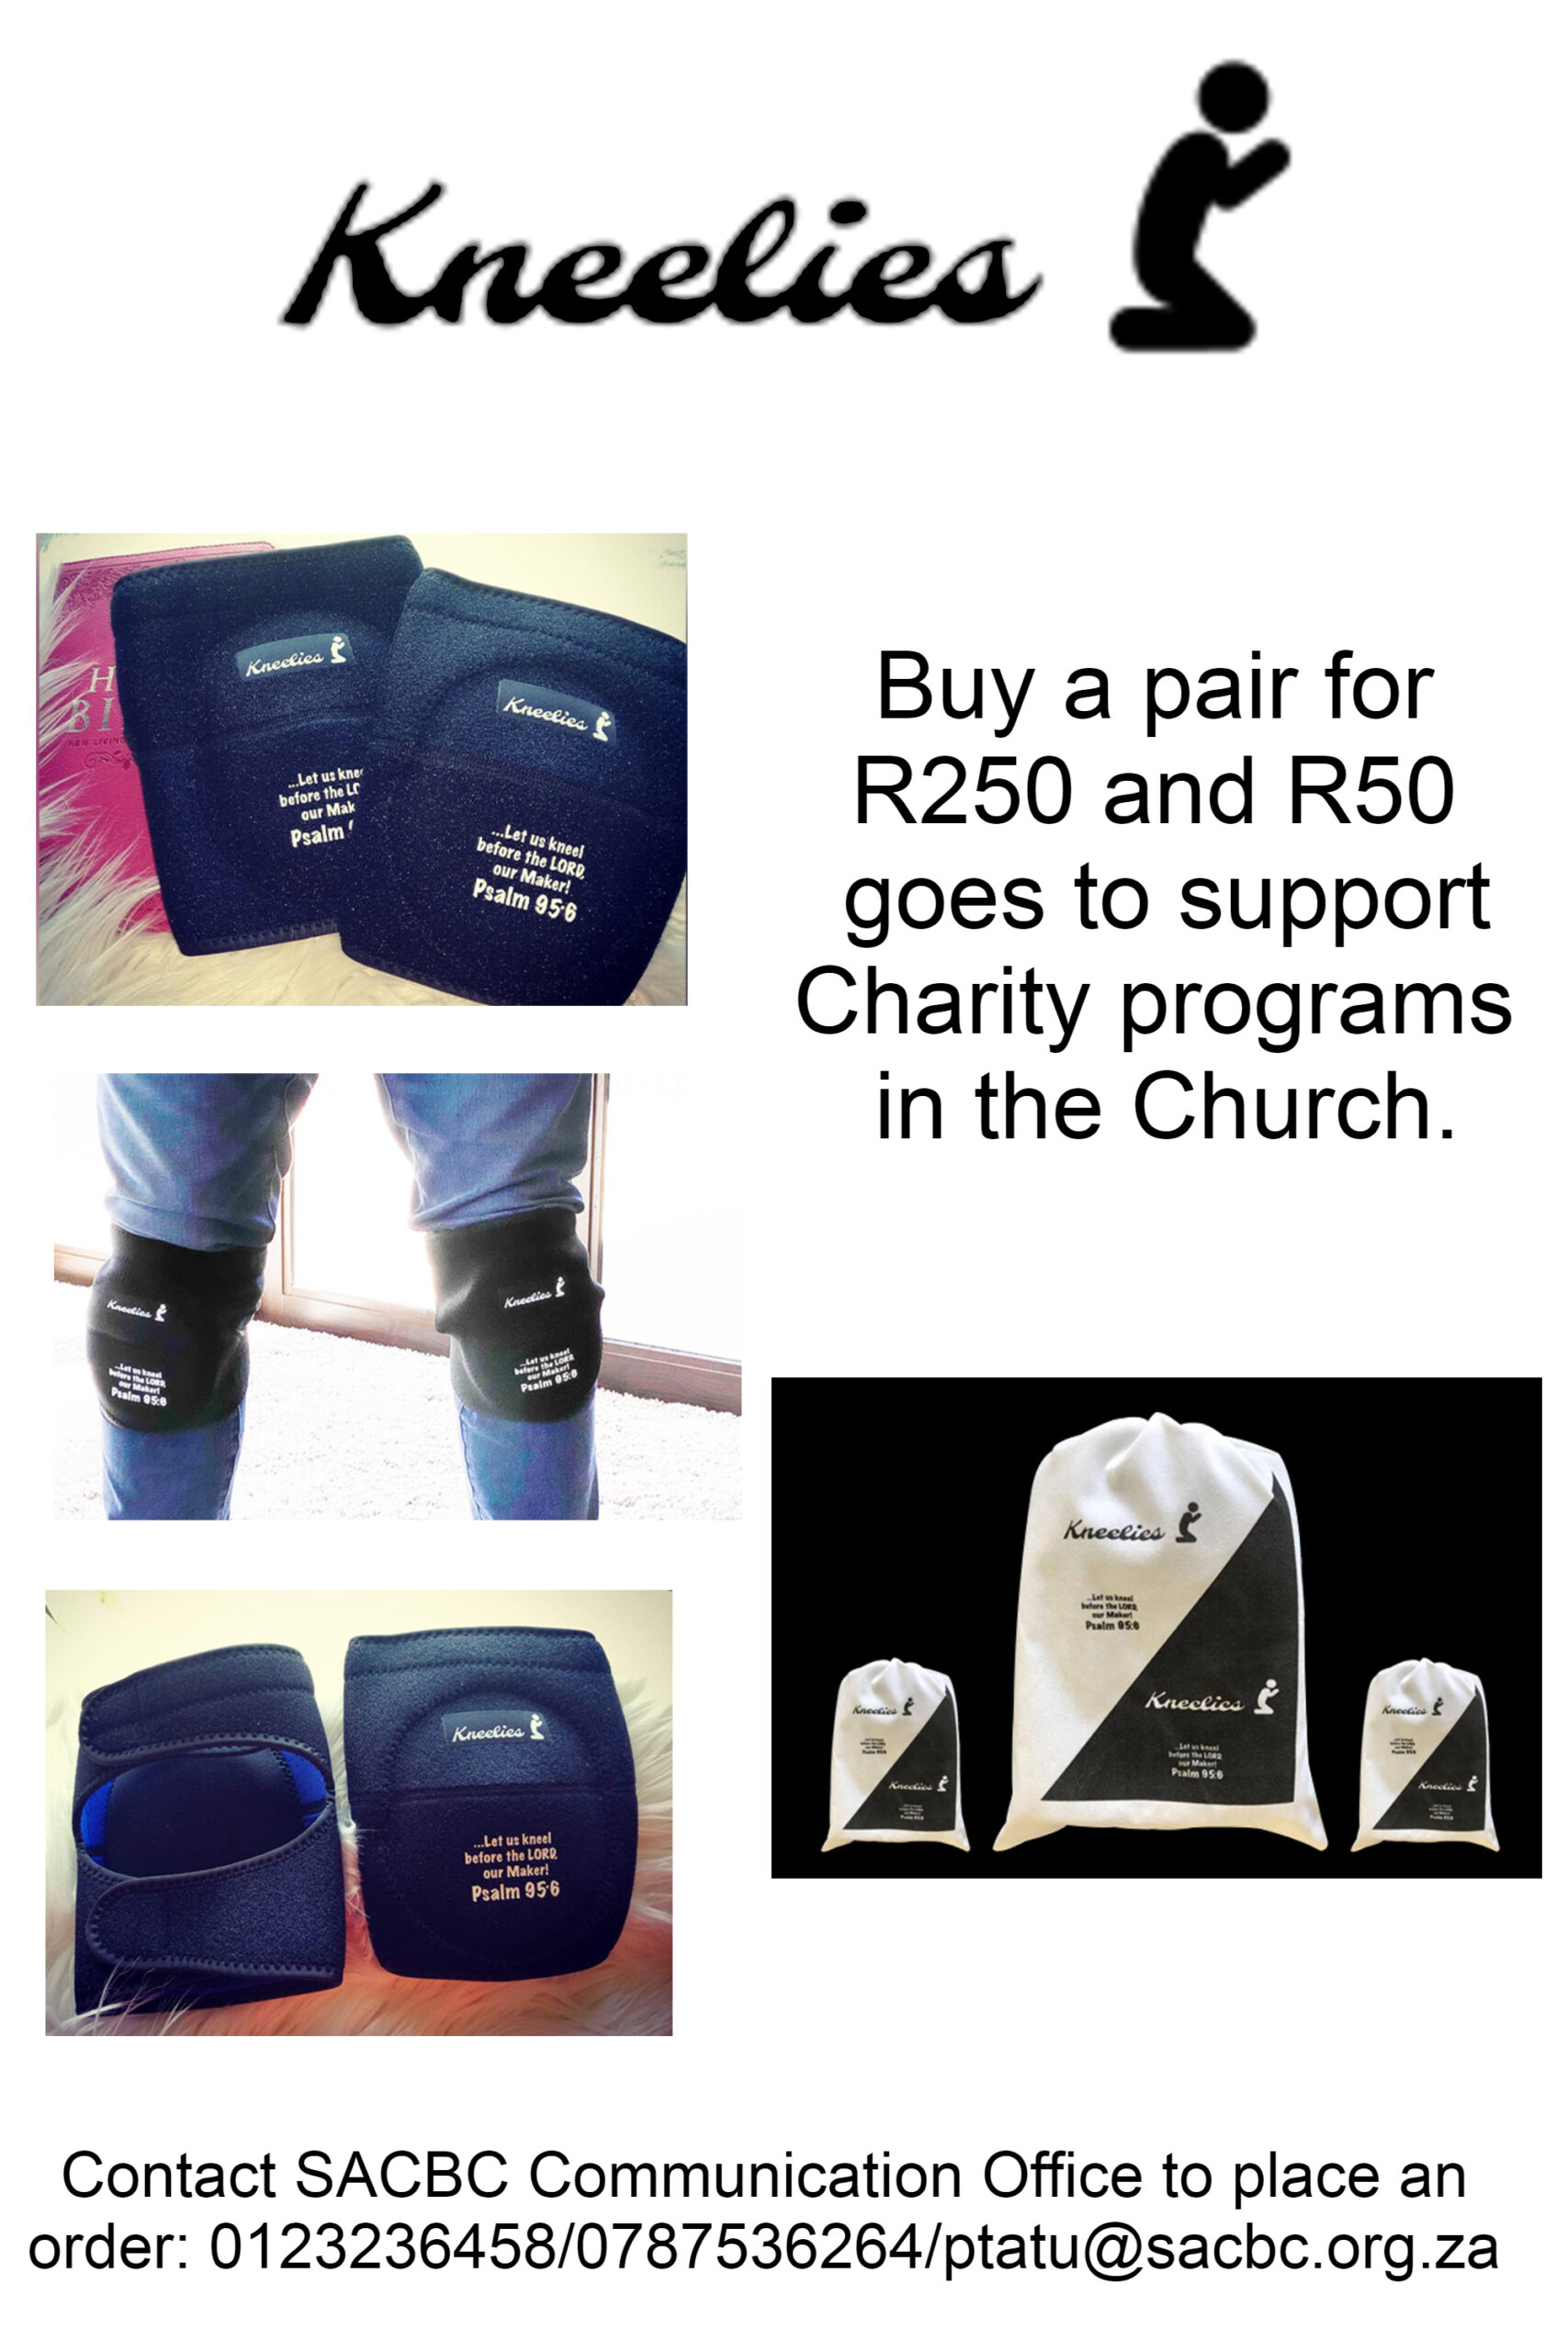 Get yourself a pair of Kneelies and pray better and comfortably